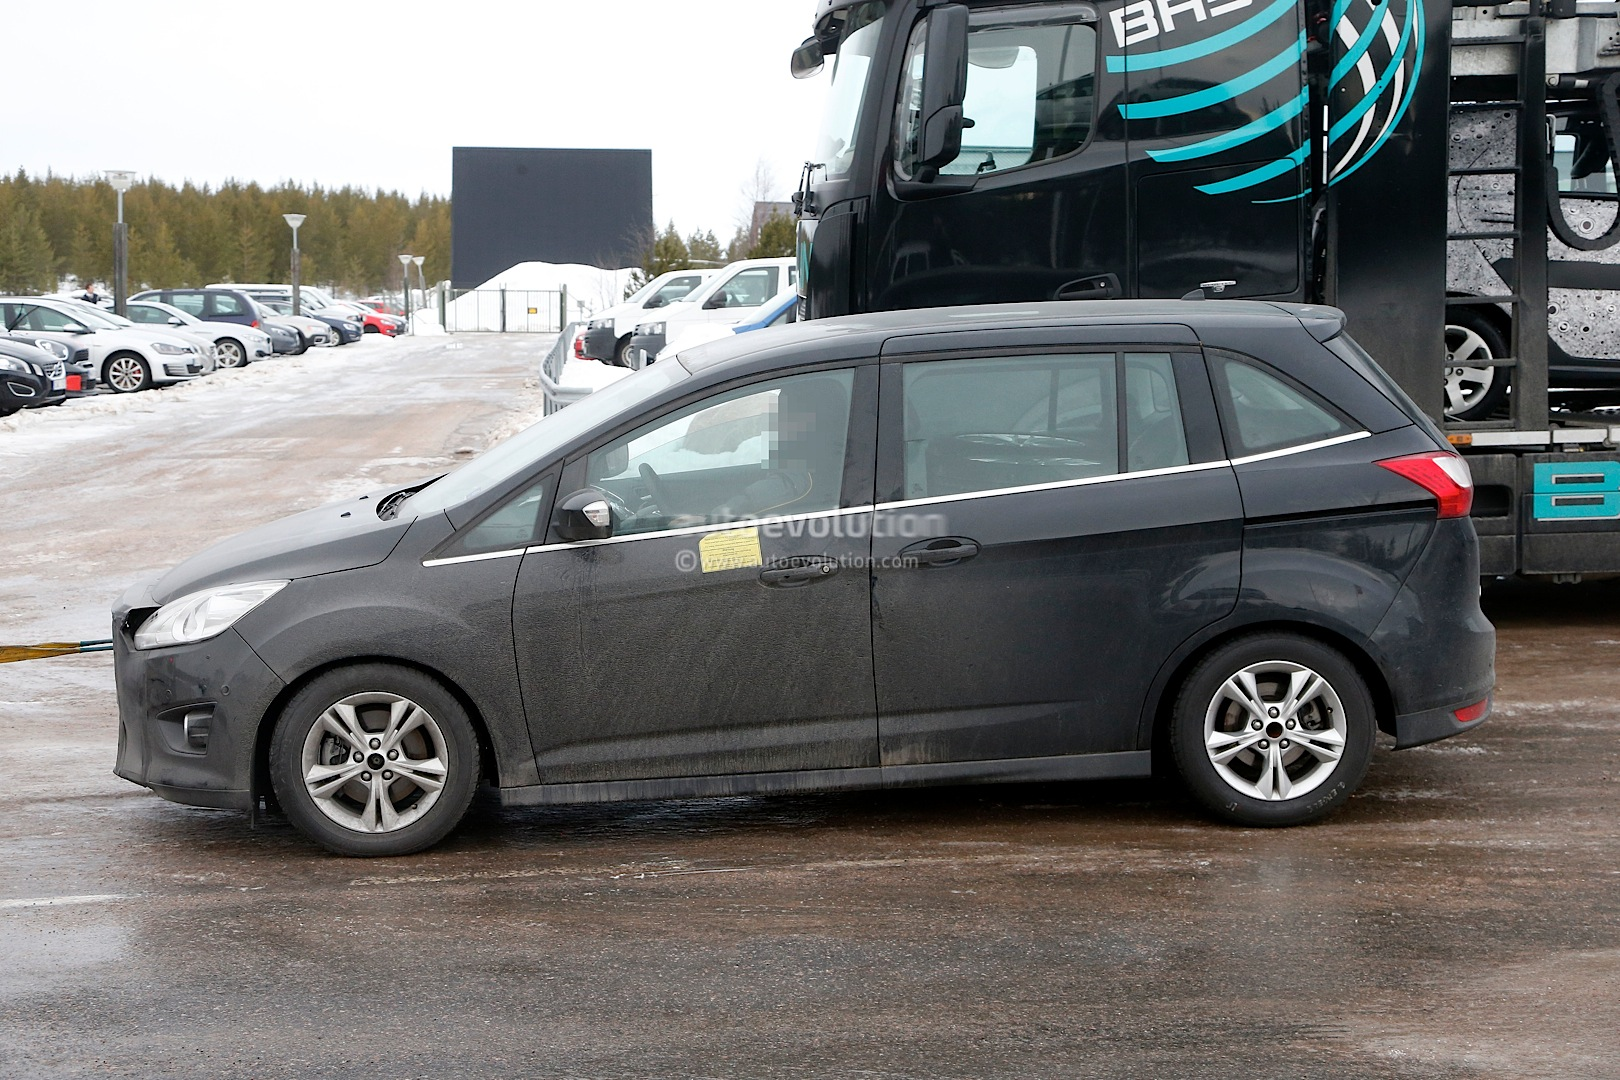 ford c max facelift prototype breaks down during testing. Black Bedroom Furniture Sets. Home Design Ideas